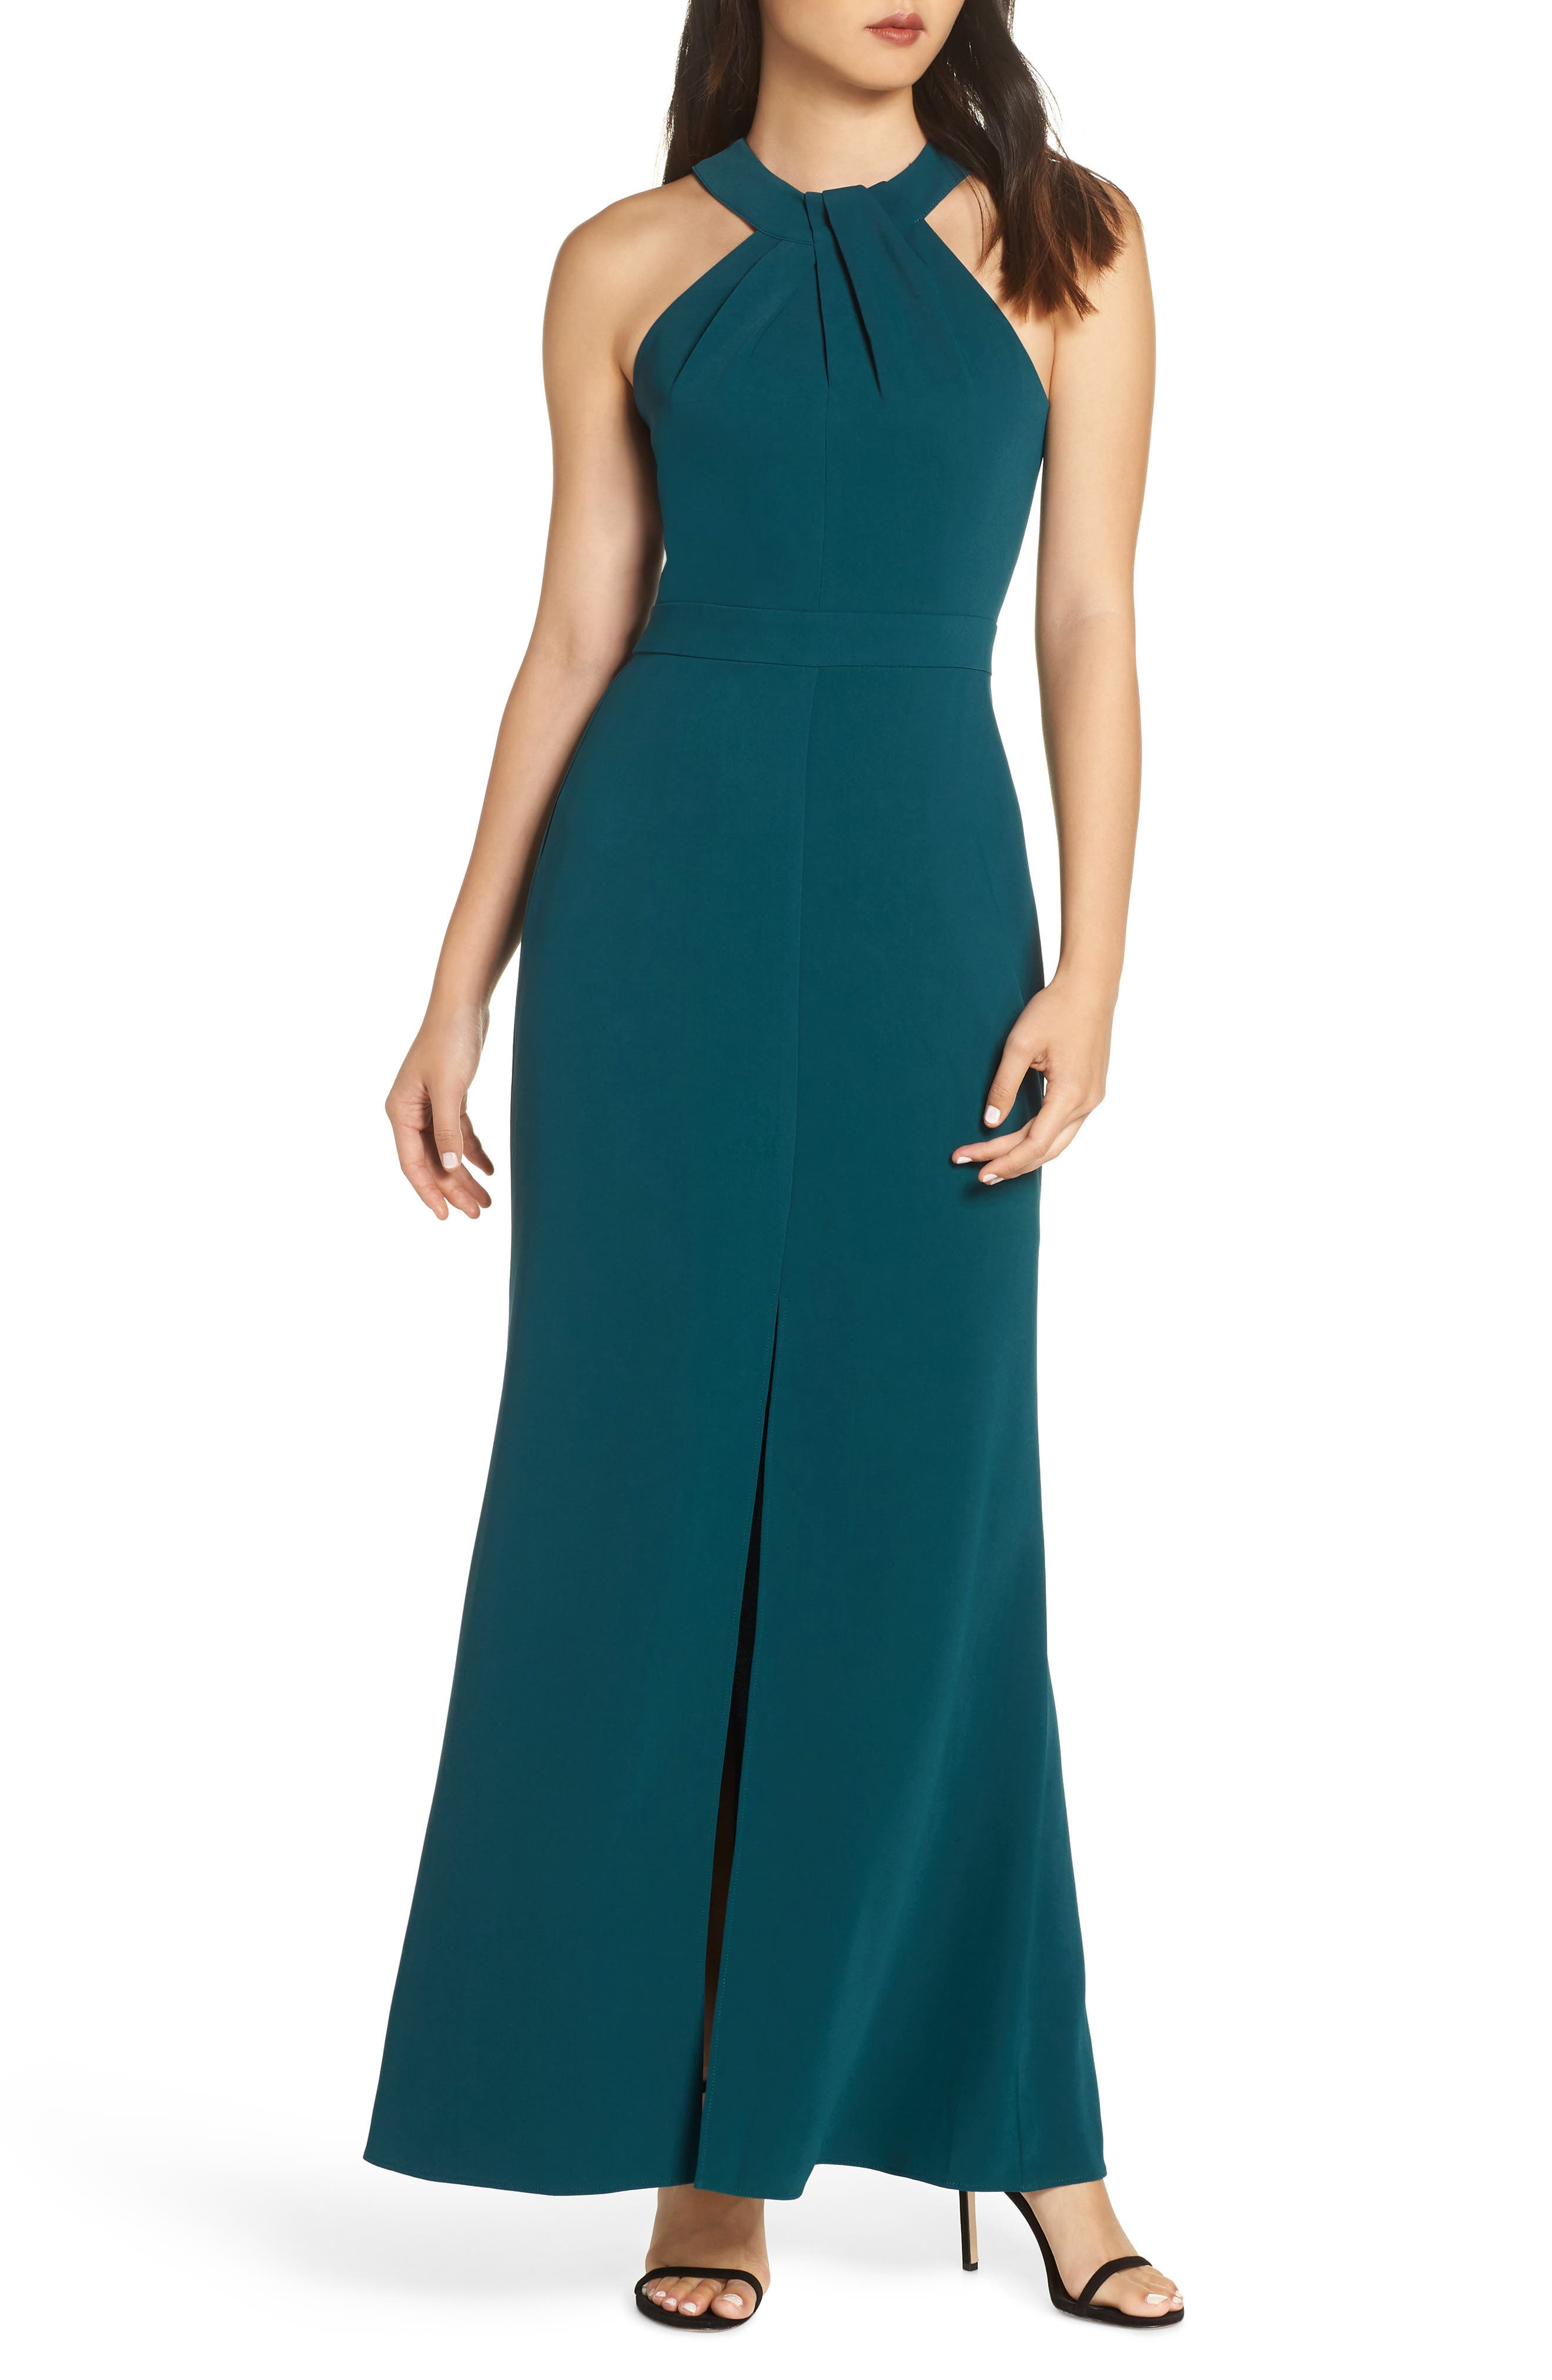 HARLYN Halter Gown in Forest Green